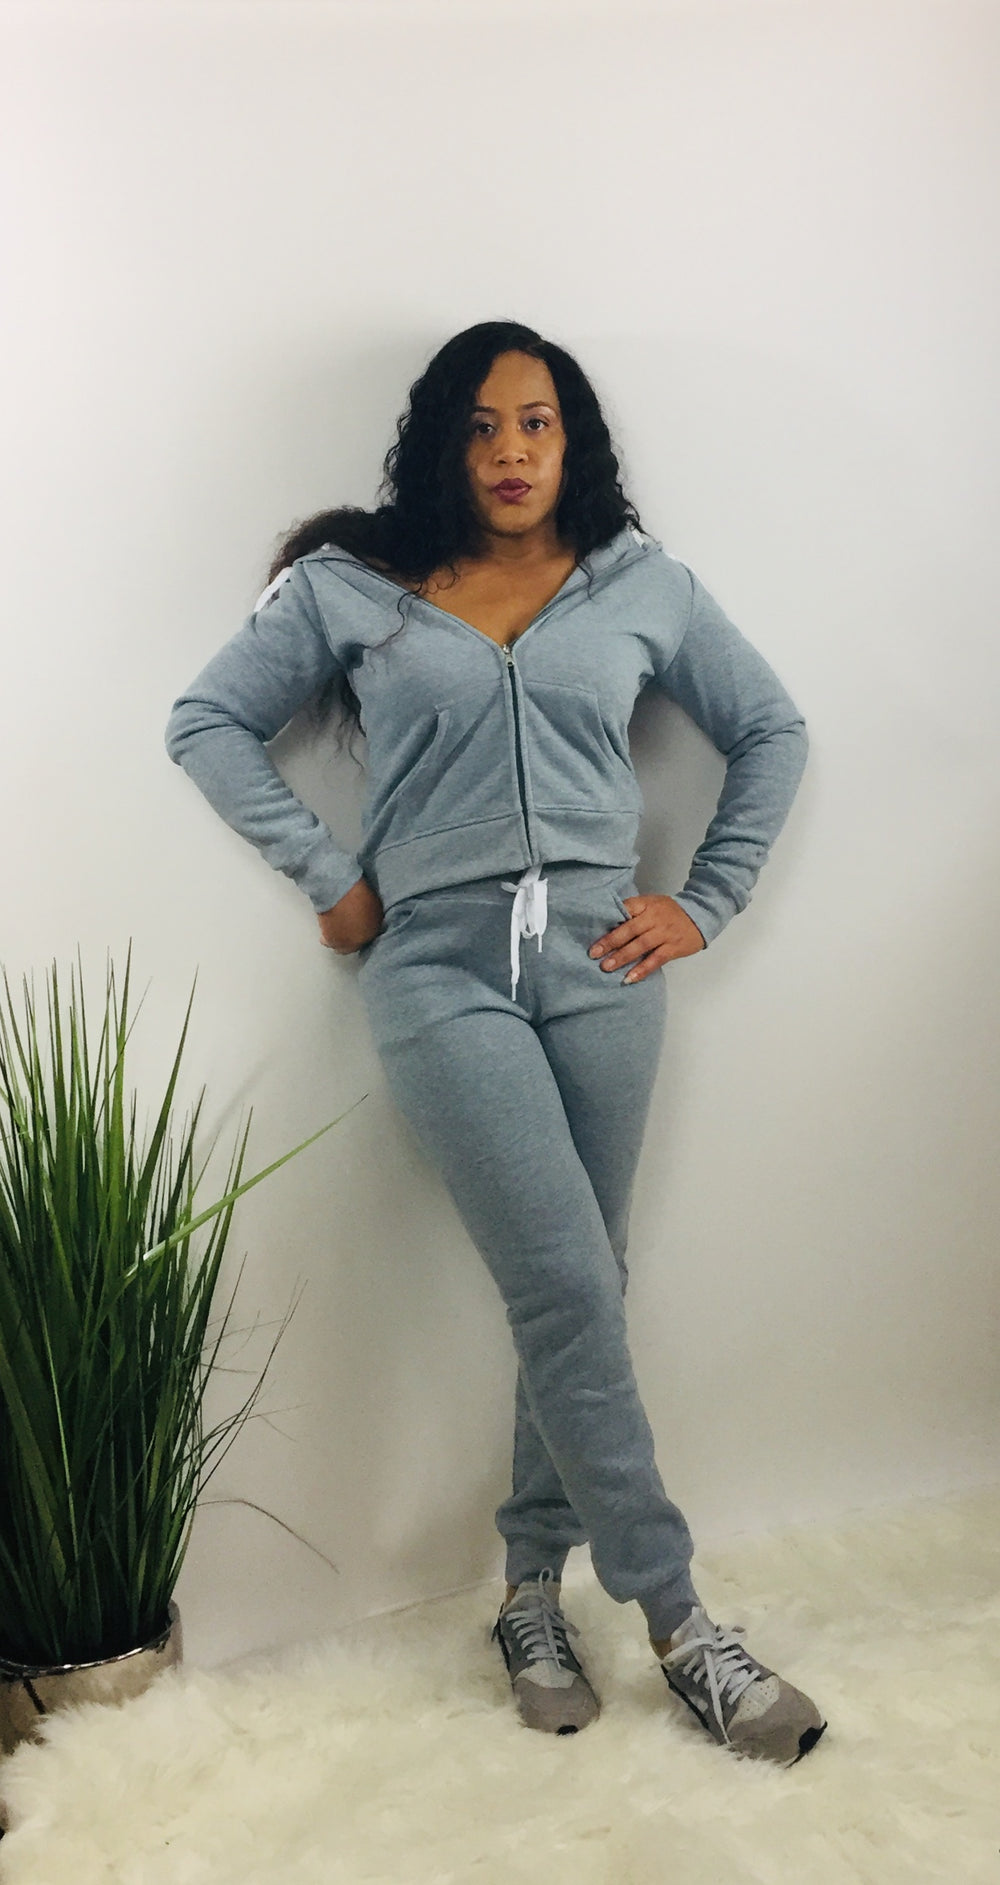 heather gray hooded zippered jacket and matching jogger style pants with pockets